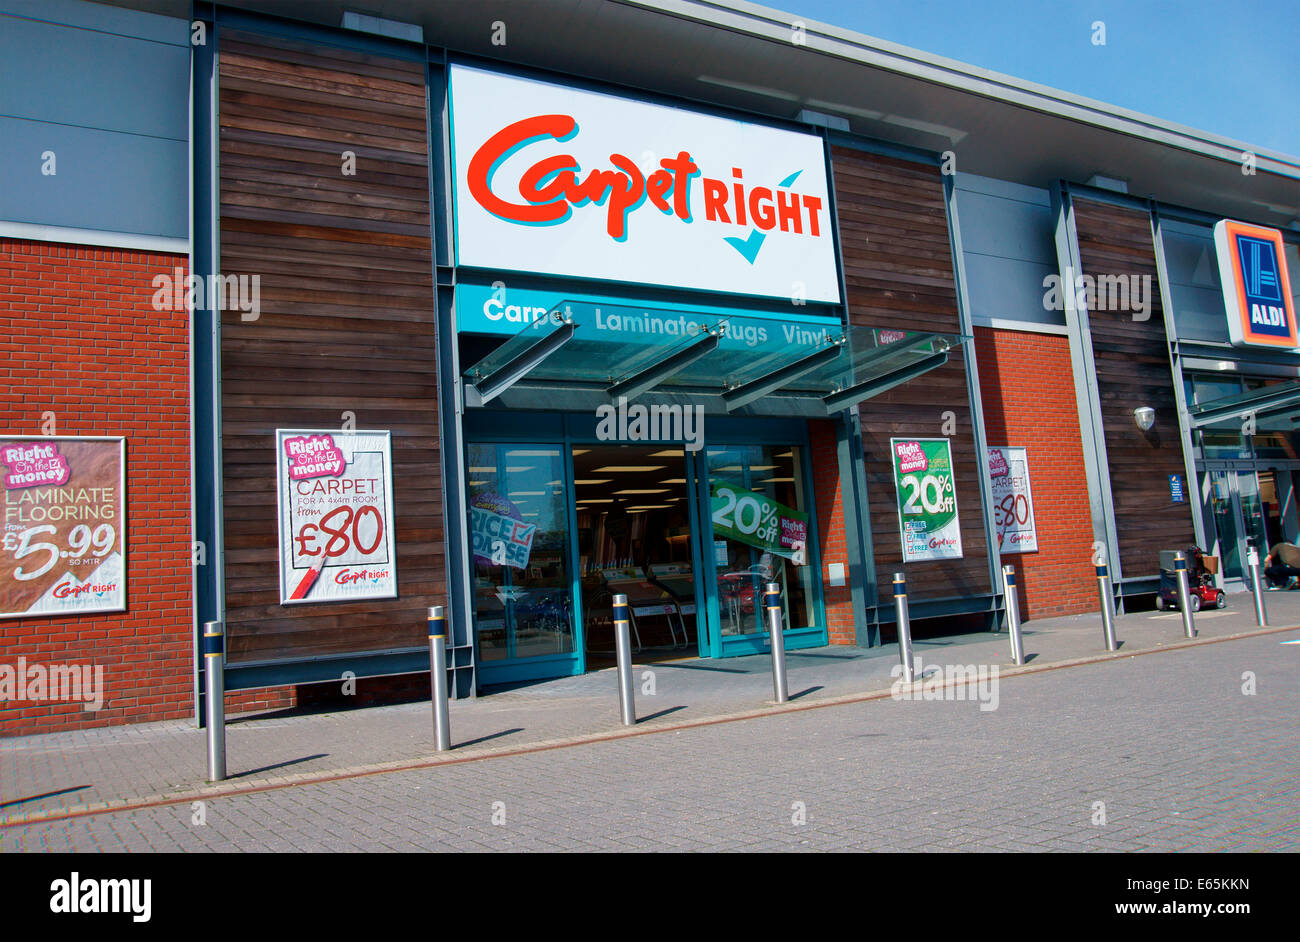 Carpet right Store, Havant, Hampshire, UK - Stock Image